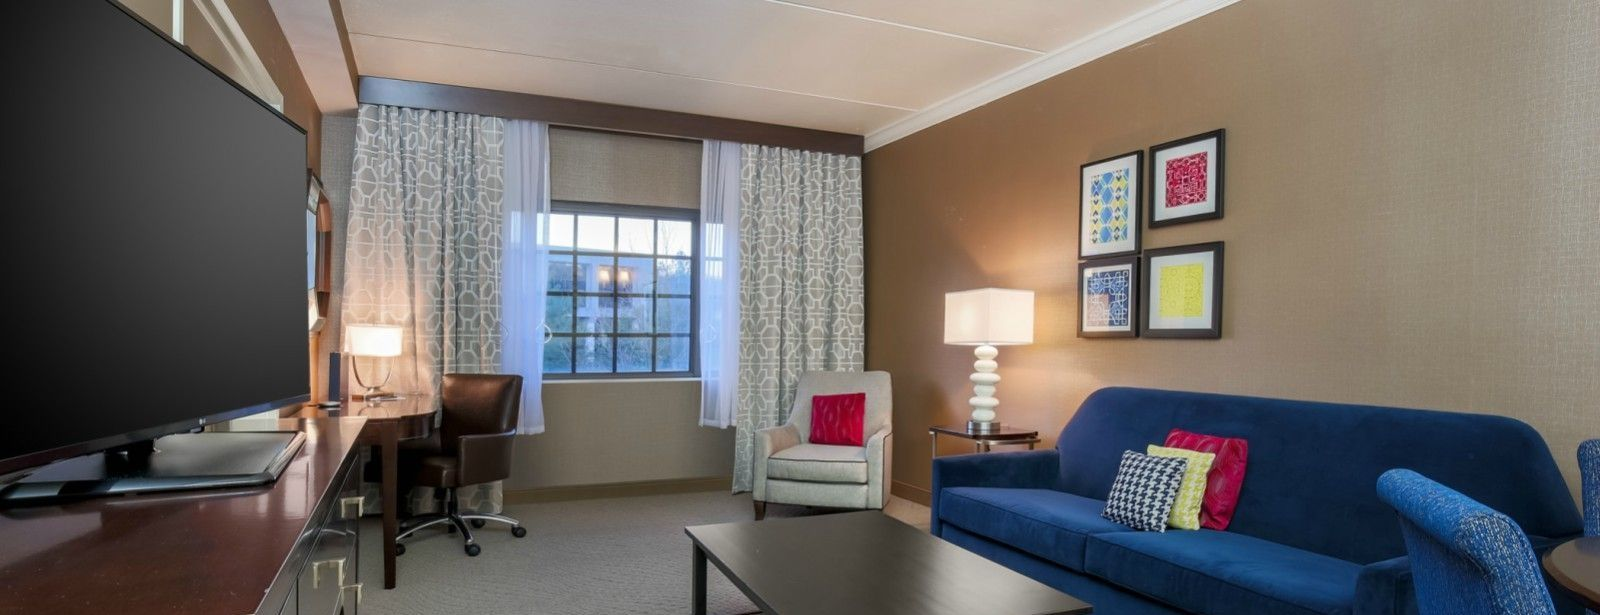 Tarrytown Accommodations - Suite Living Room